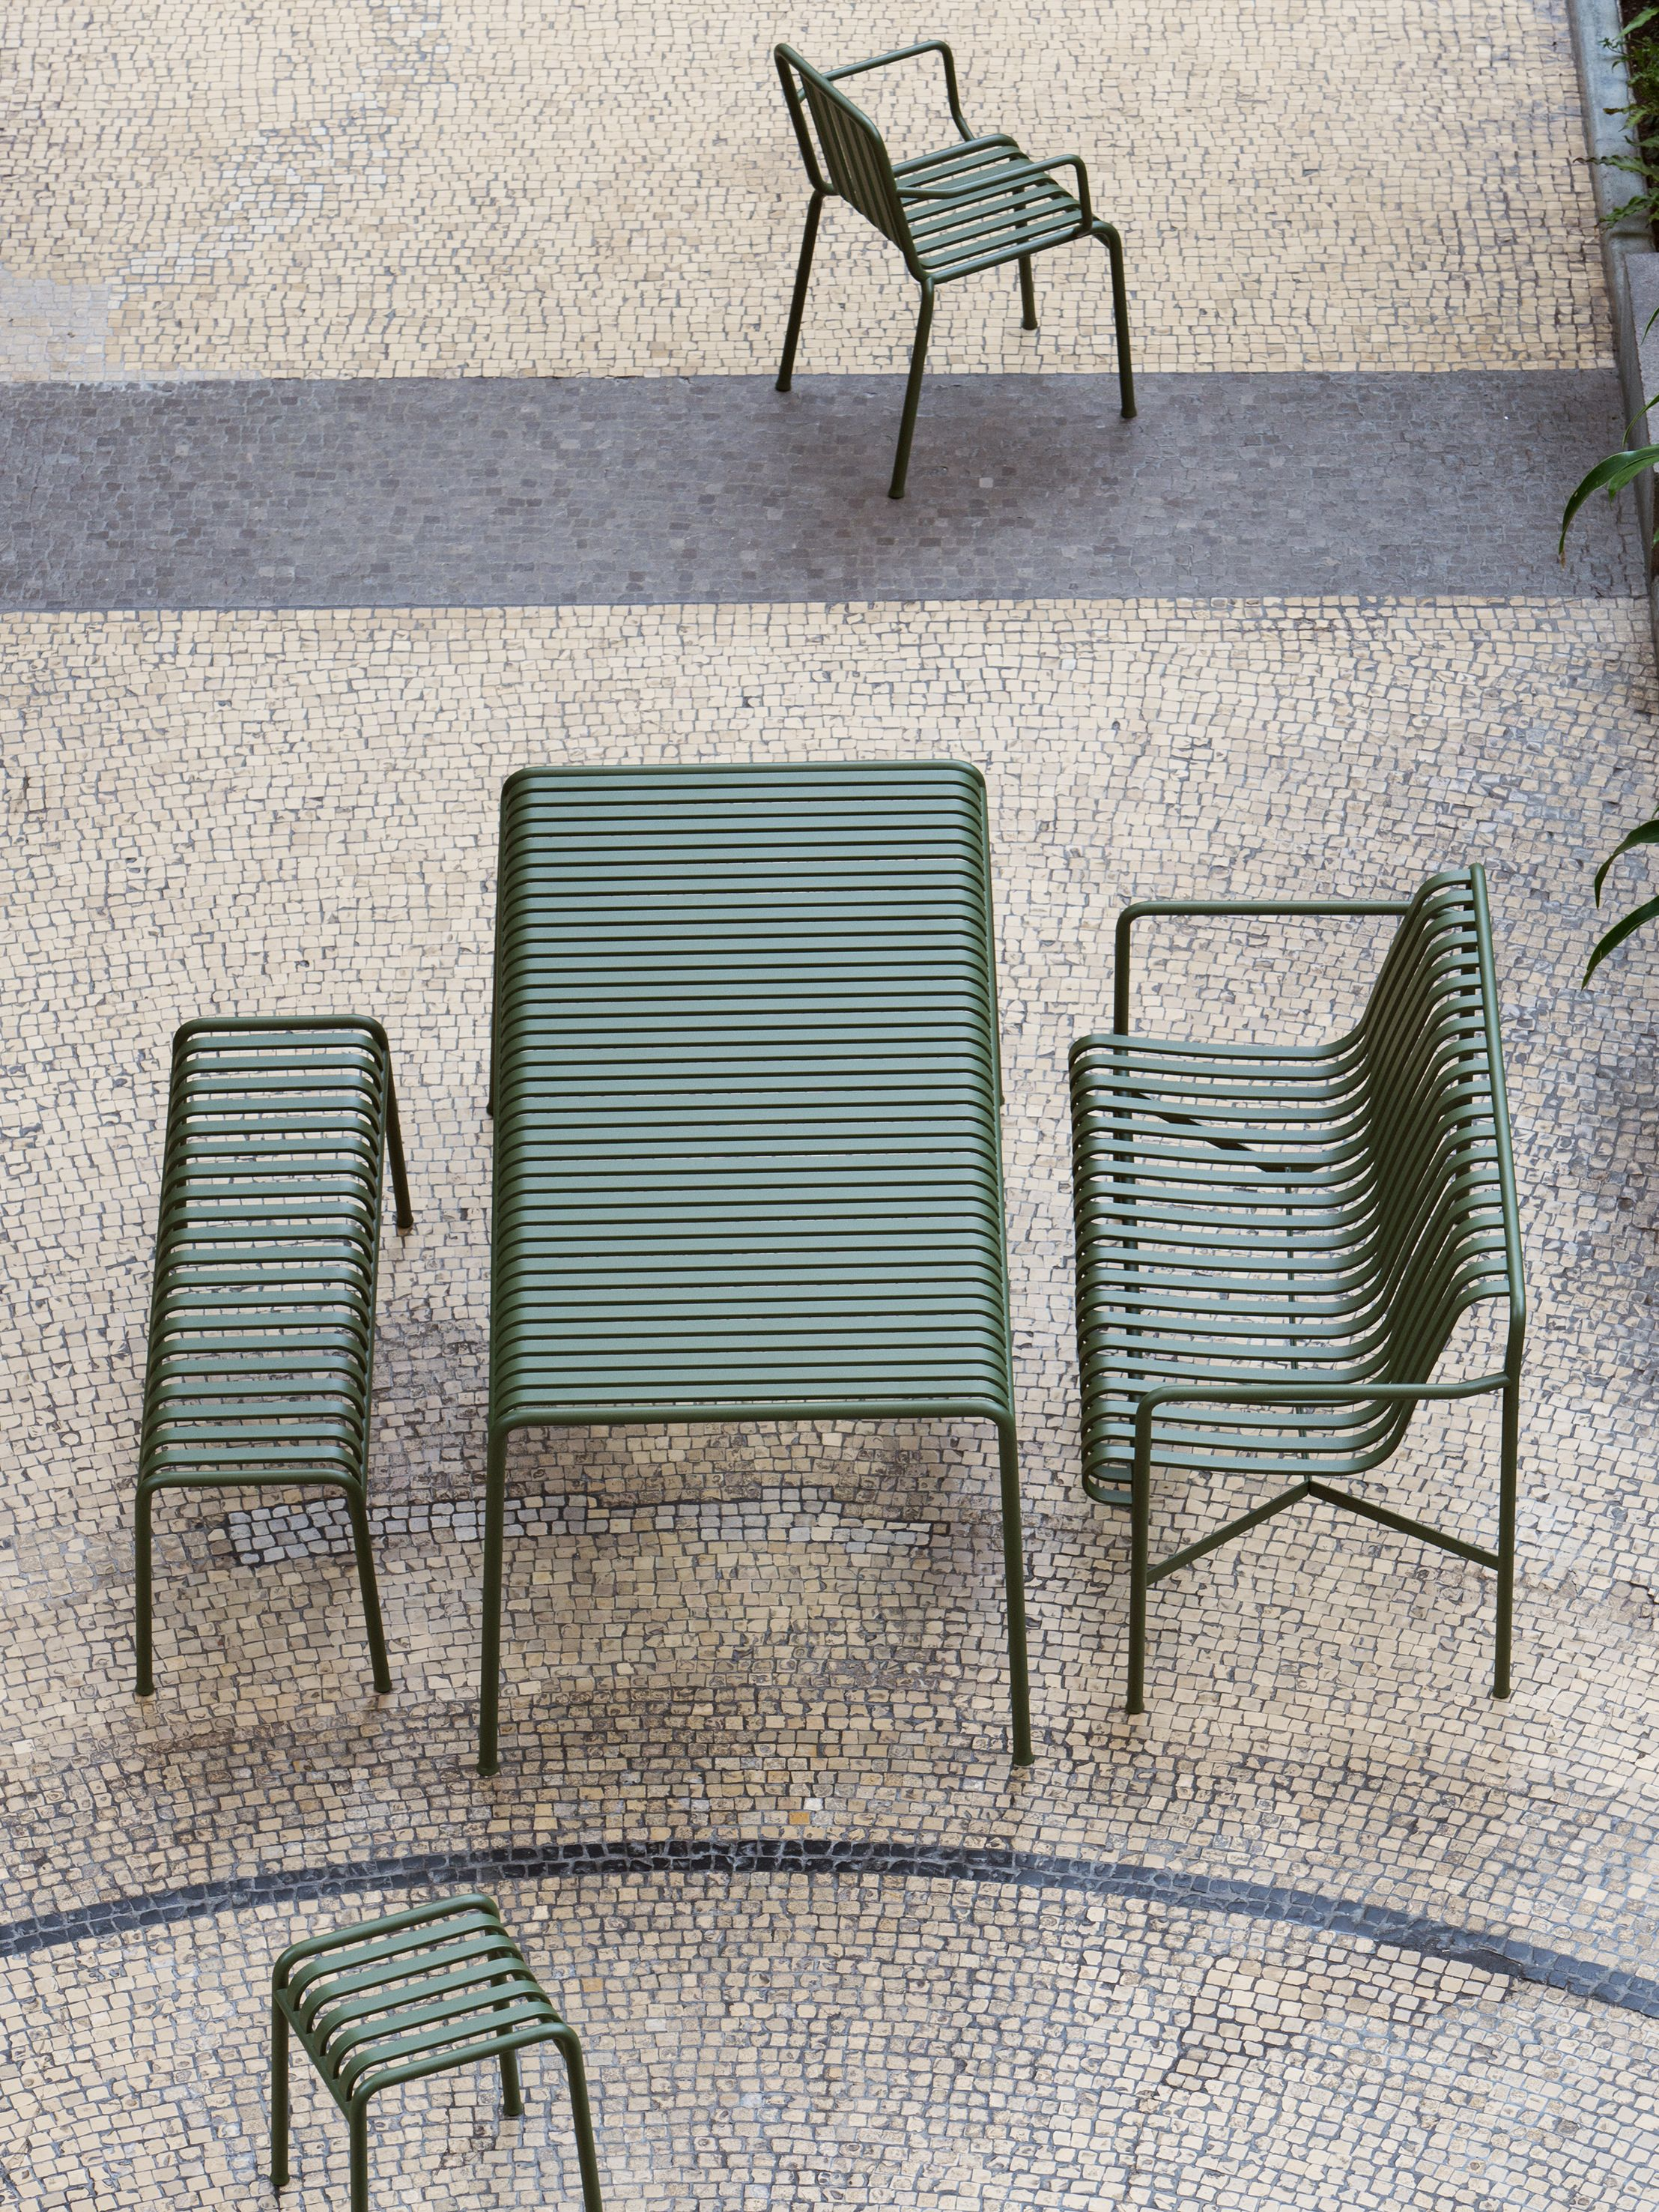 Outdoor Furniture: Metal Lawn Chairs Made Modern | La quinta ...